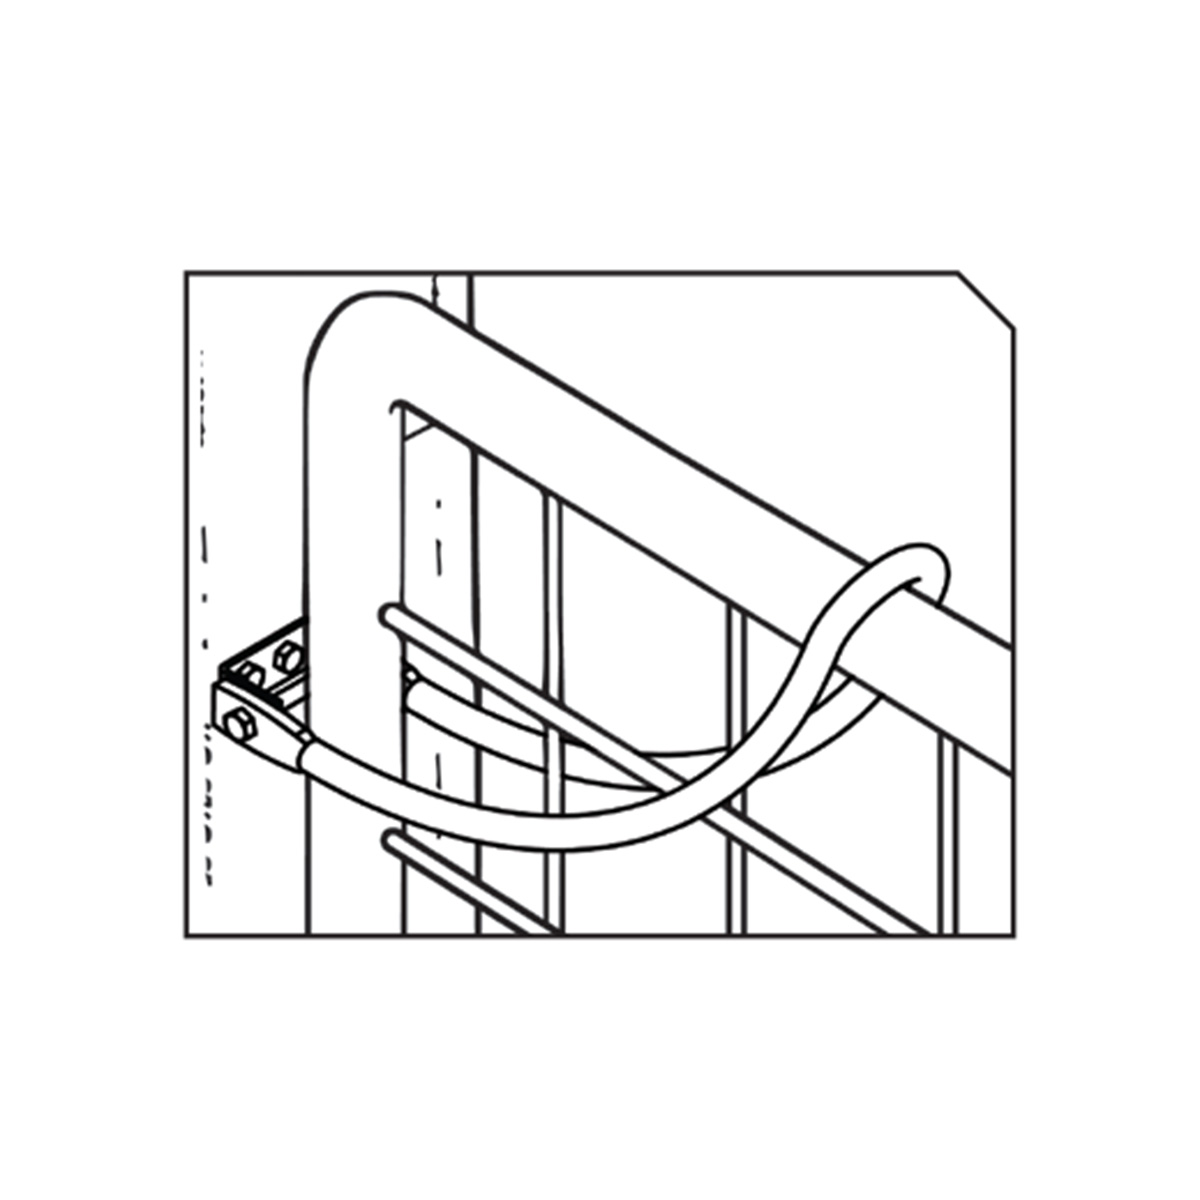 13791 gate bow latch illustration